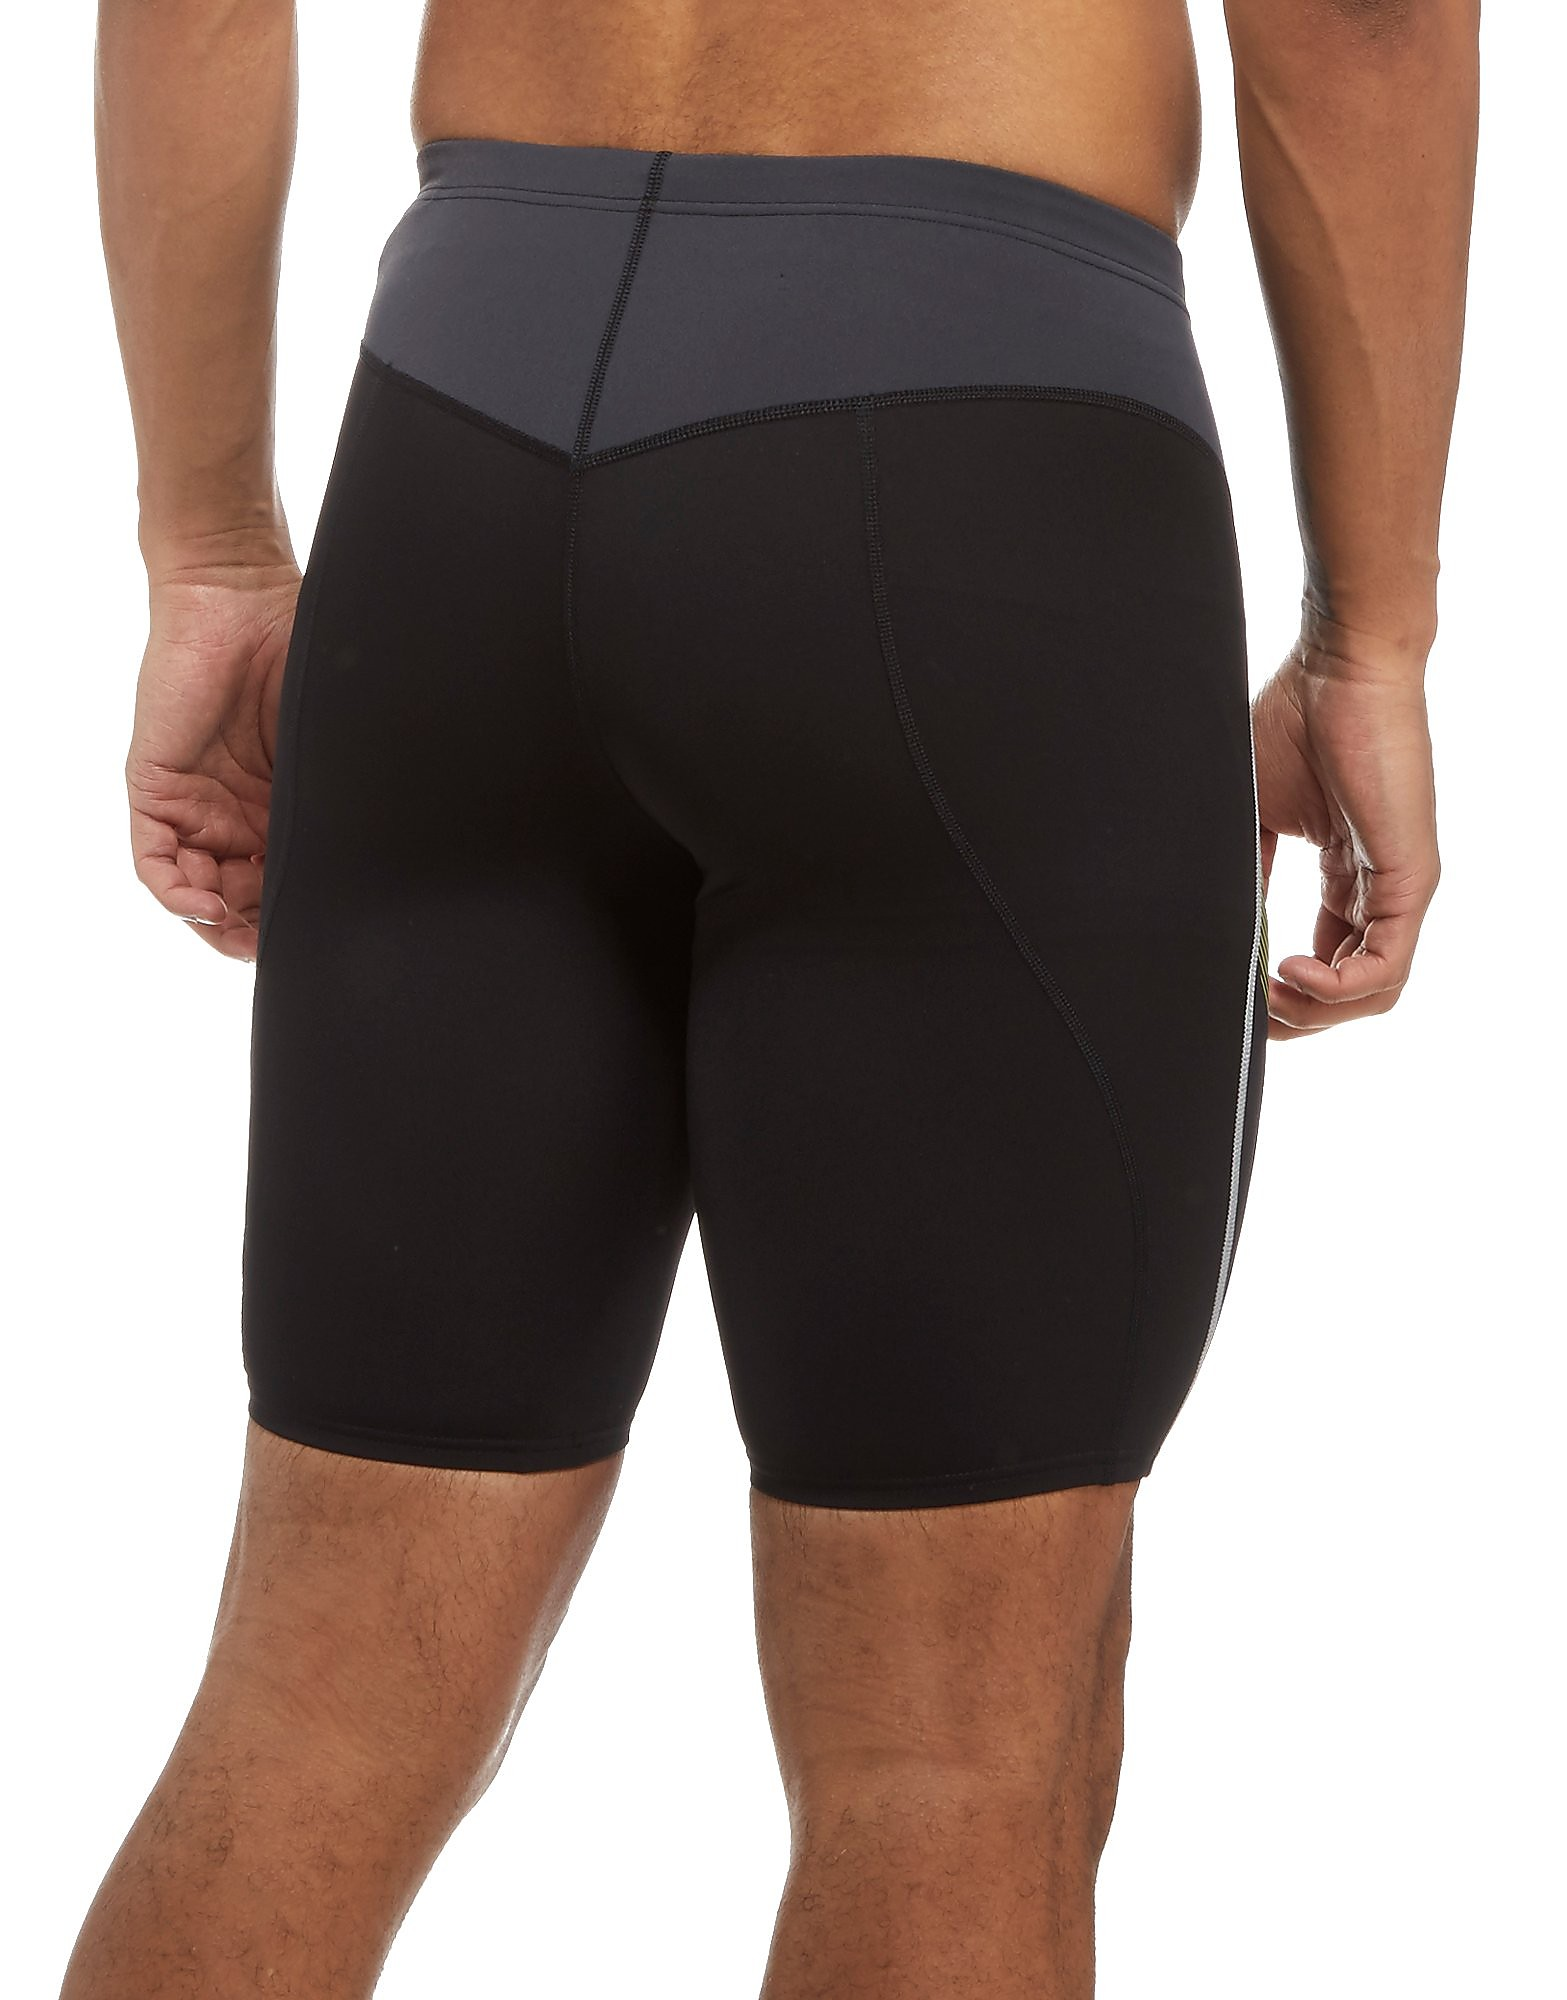 Speedo Endurance Plus Fit Panel Swimming Jammers